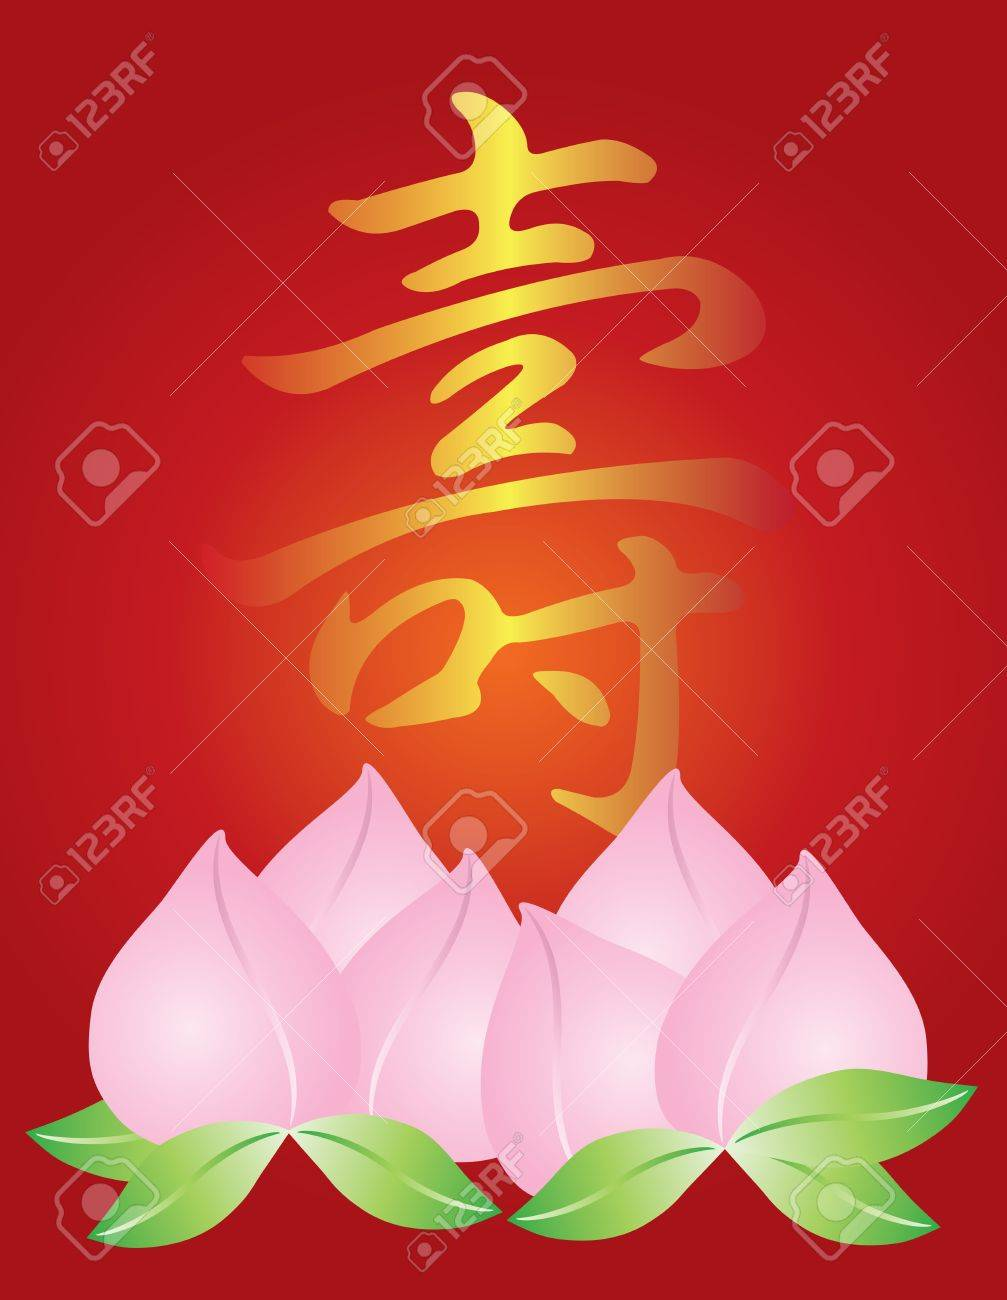 Longevity Chinese Calligraphy Birthday and Peach Fruit Buns Illustration Stock Vector - 13539230